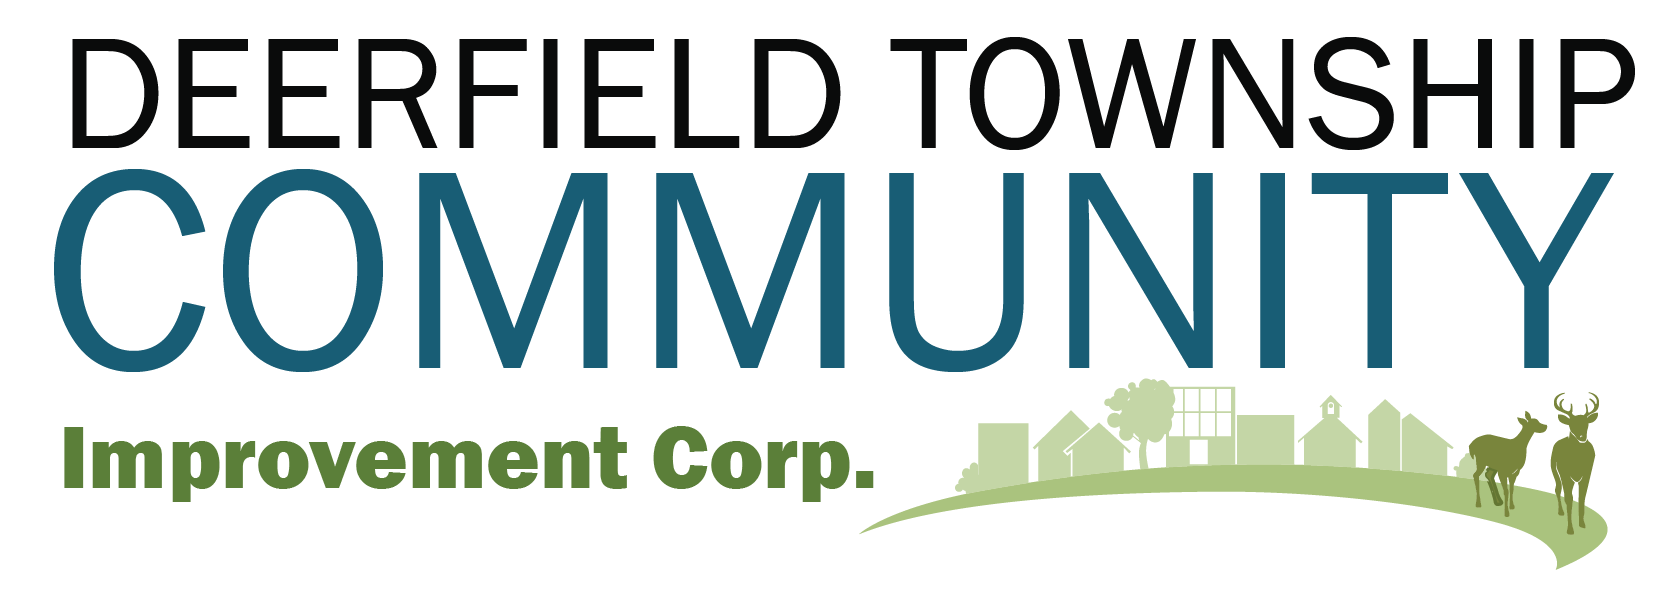 Deerfield Township Community Improvement Corporation